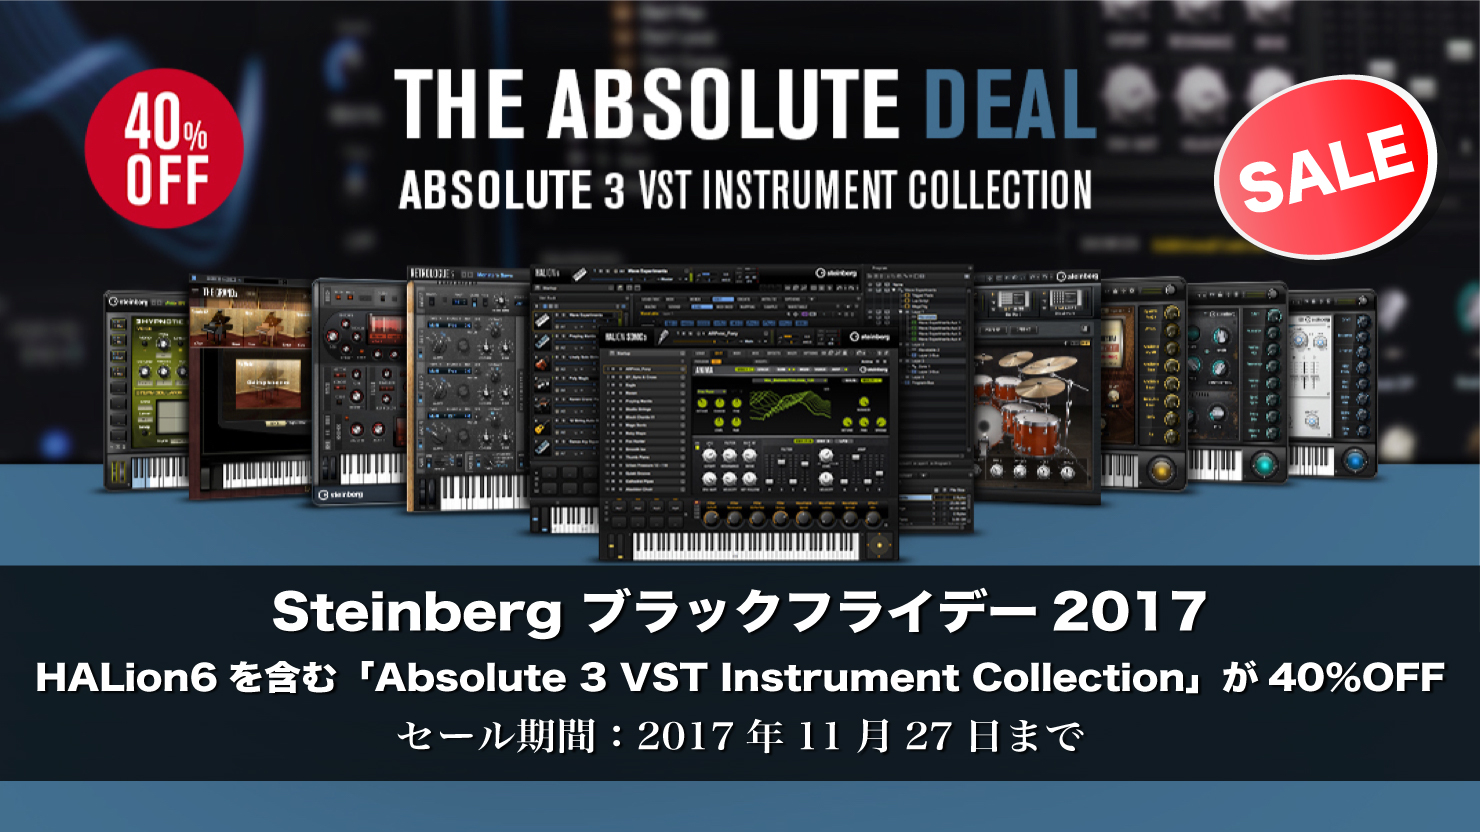 【40%OFF】Steinberg ブラックフライデー2017 HALion6を含む「Absolute 3 VST Instrument Collection」がセール中!